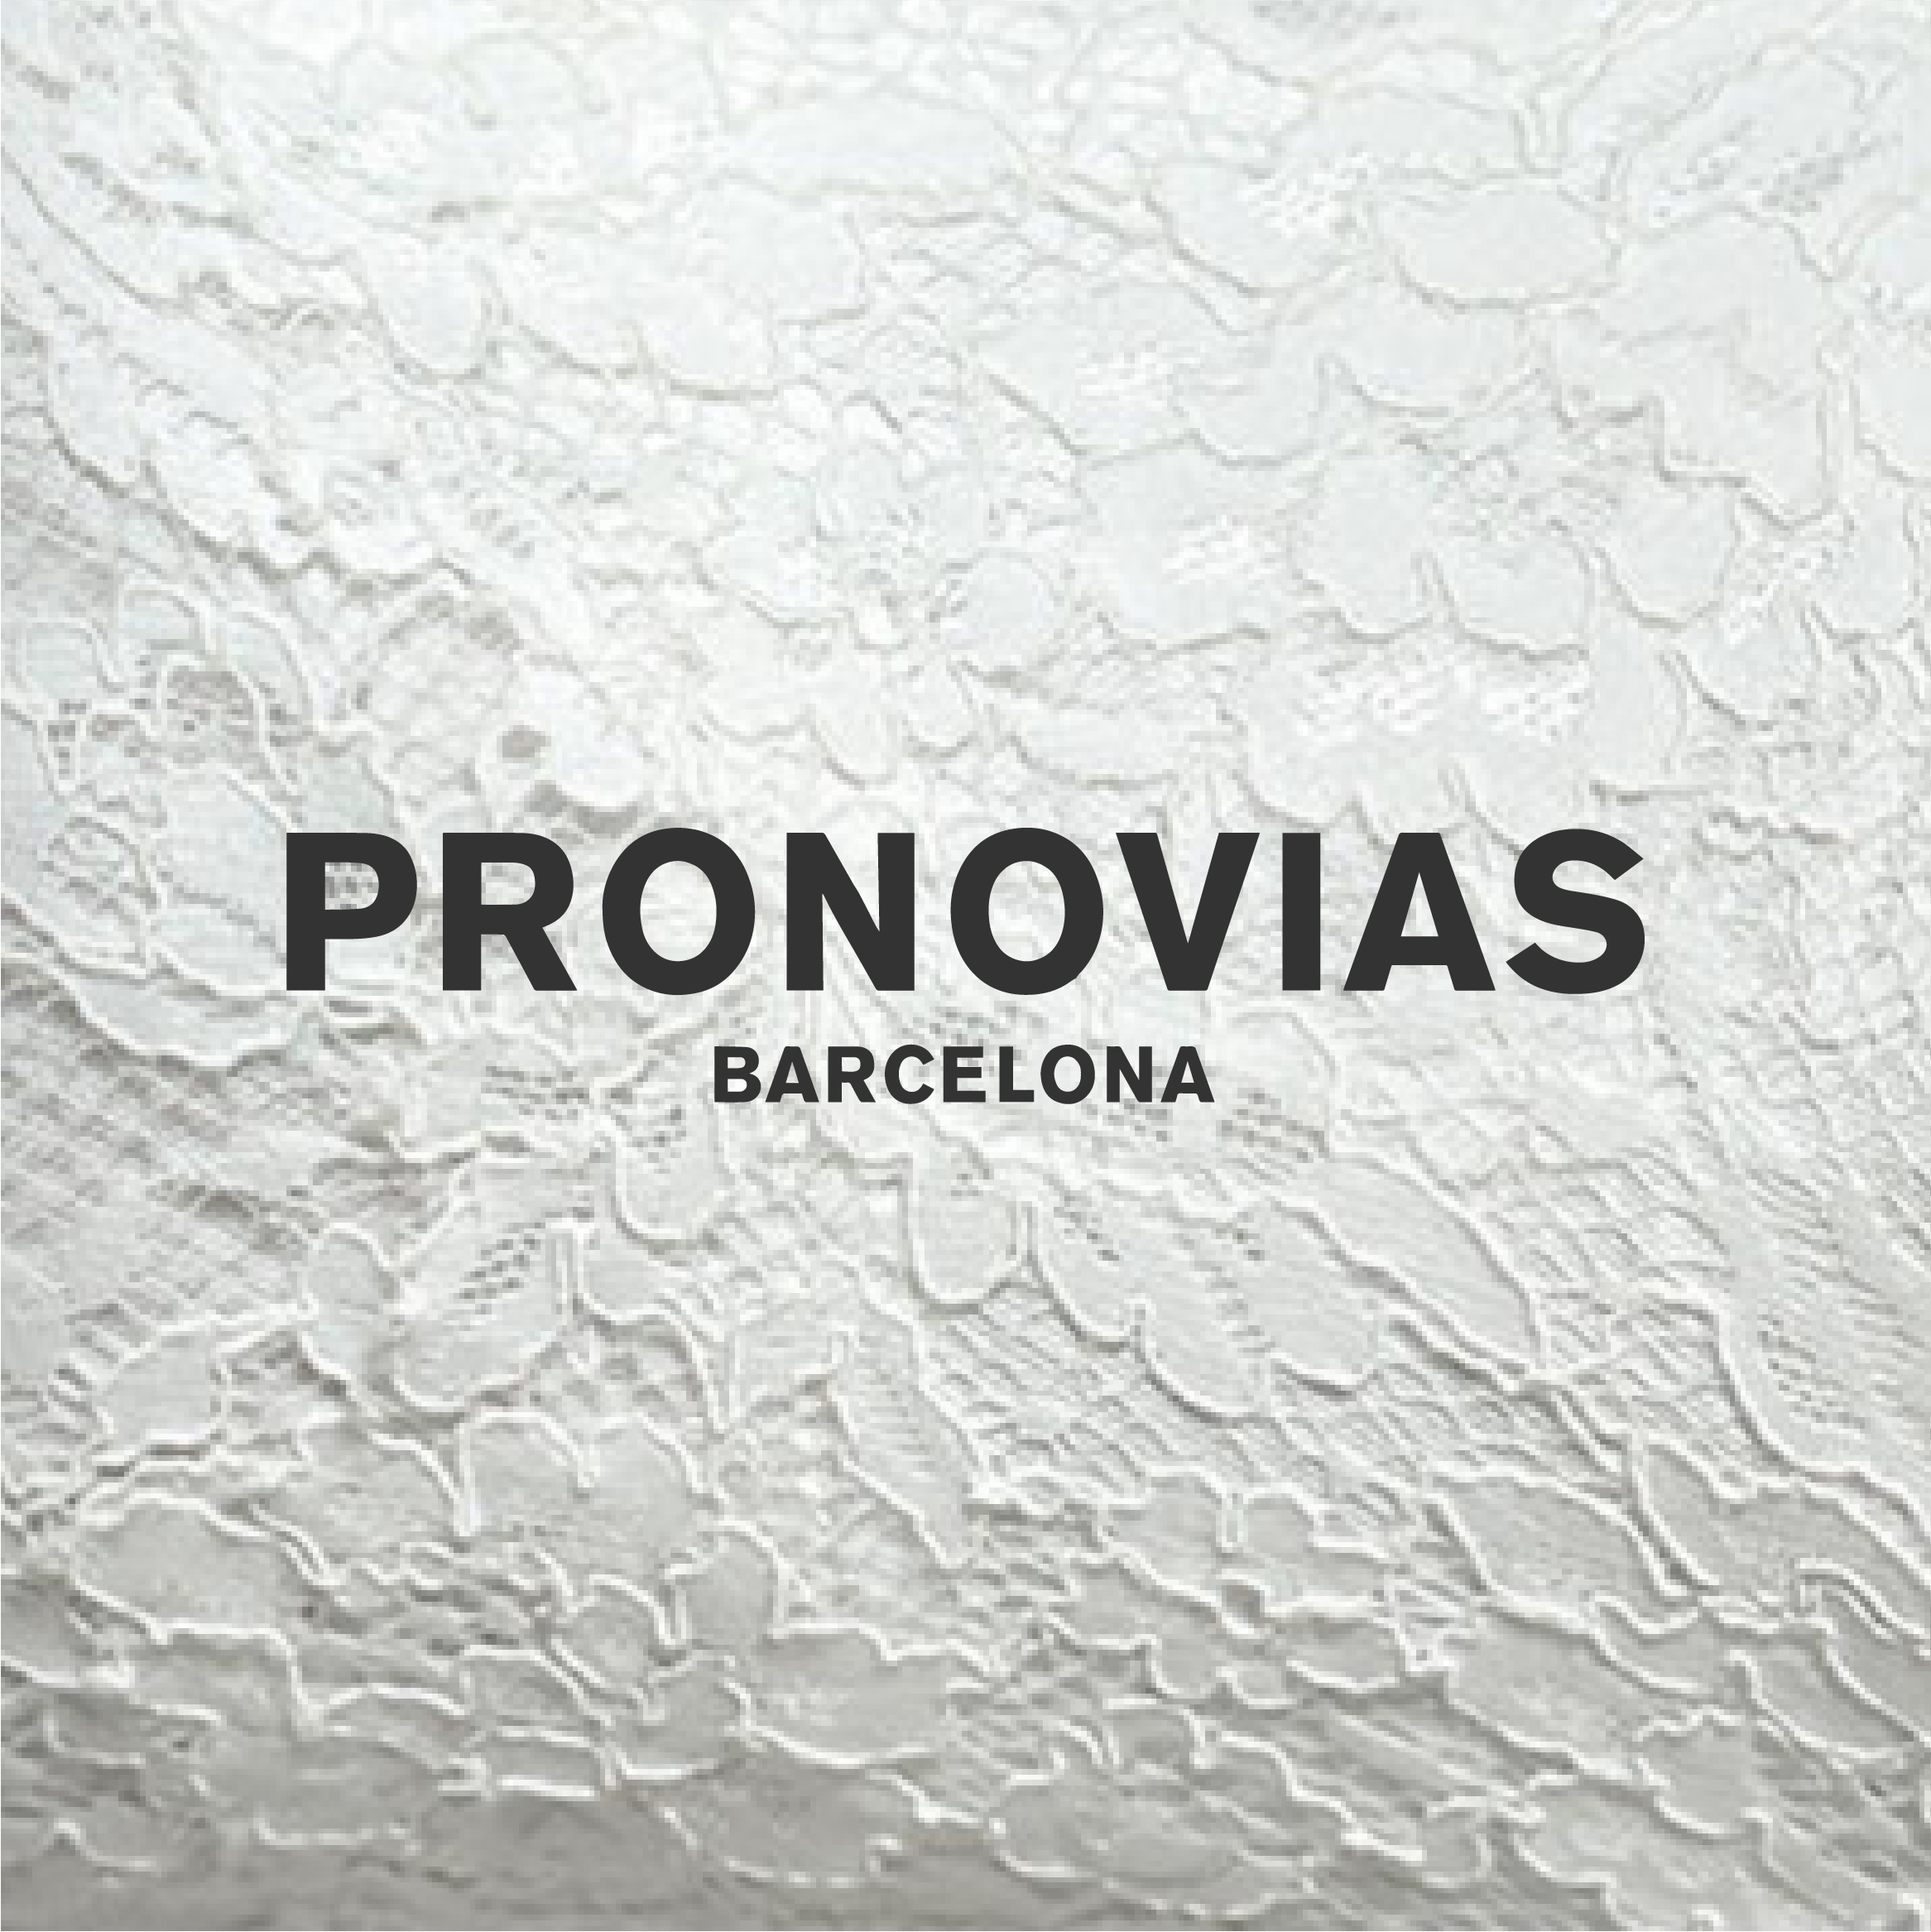 Pronovias - Case Study   Service analysis and radical service innovation for bridal retail.